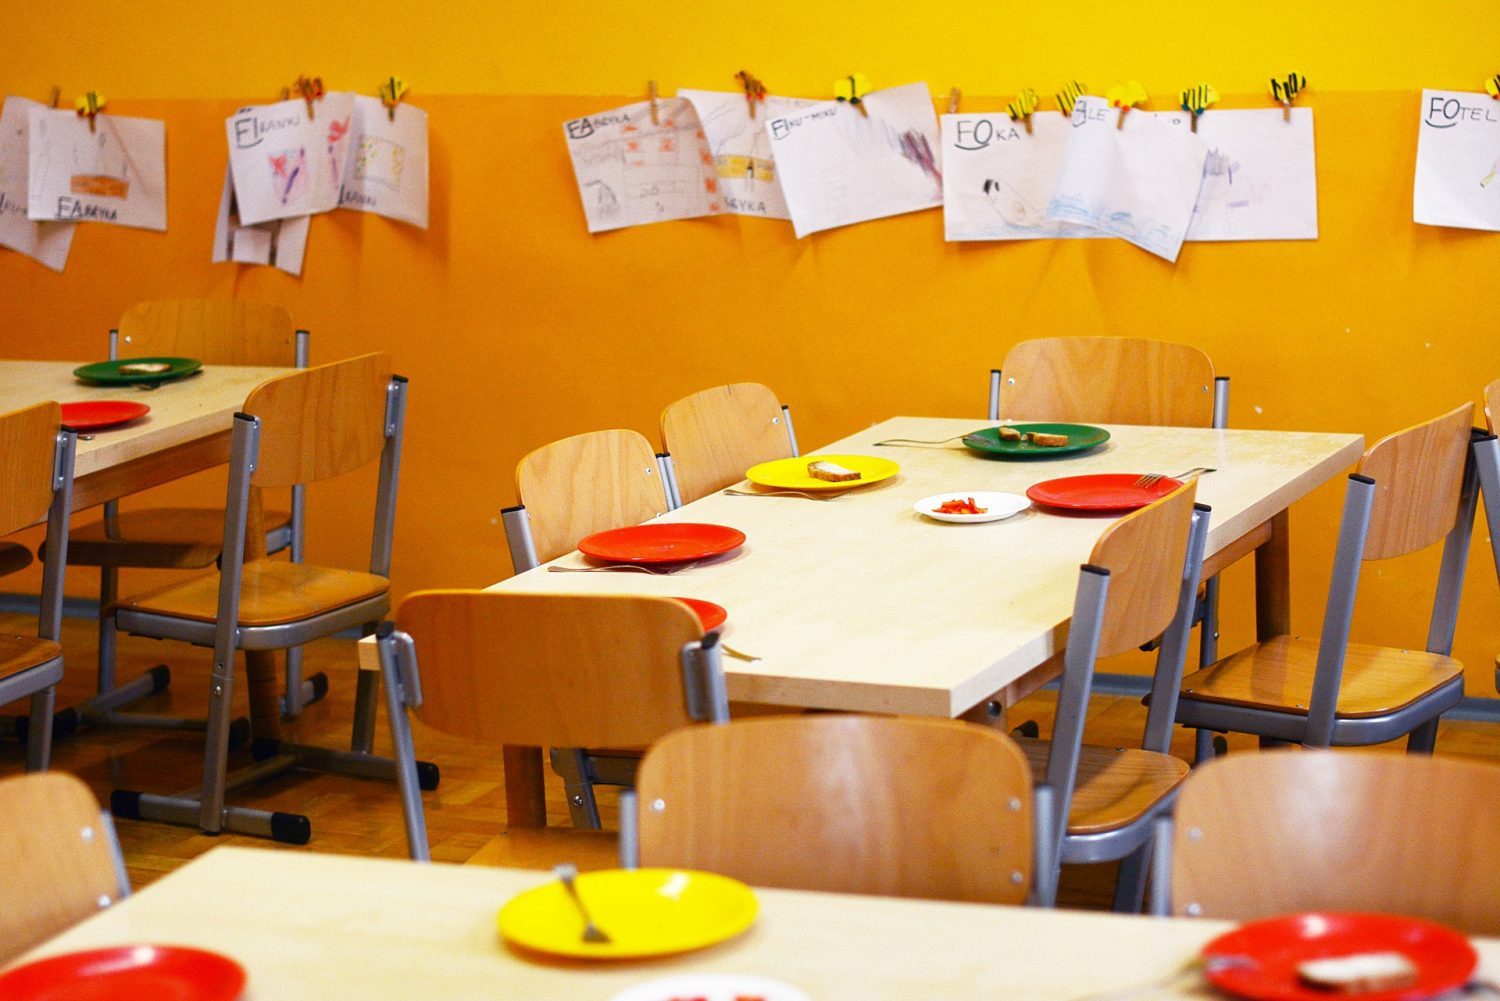 photo surfaces of black preschool students waiting for food while white classmates eat